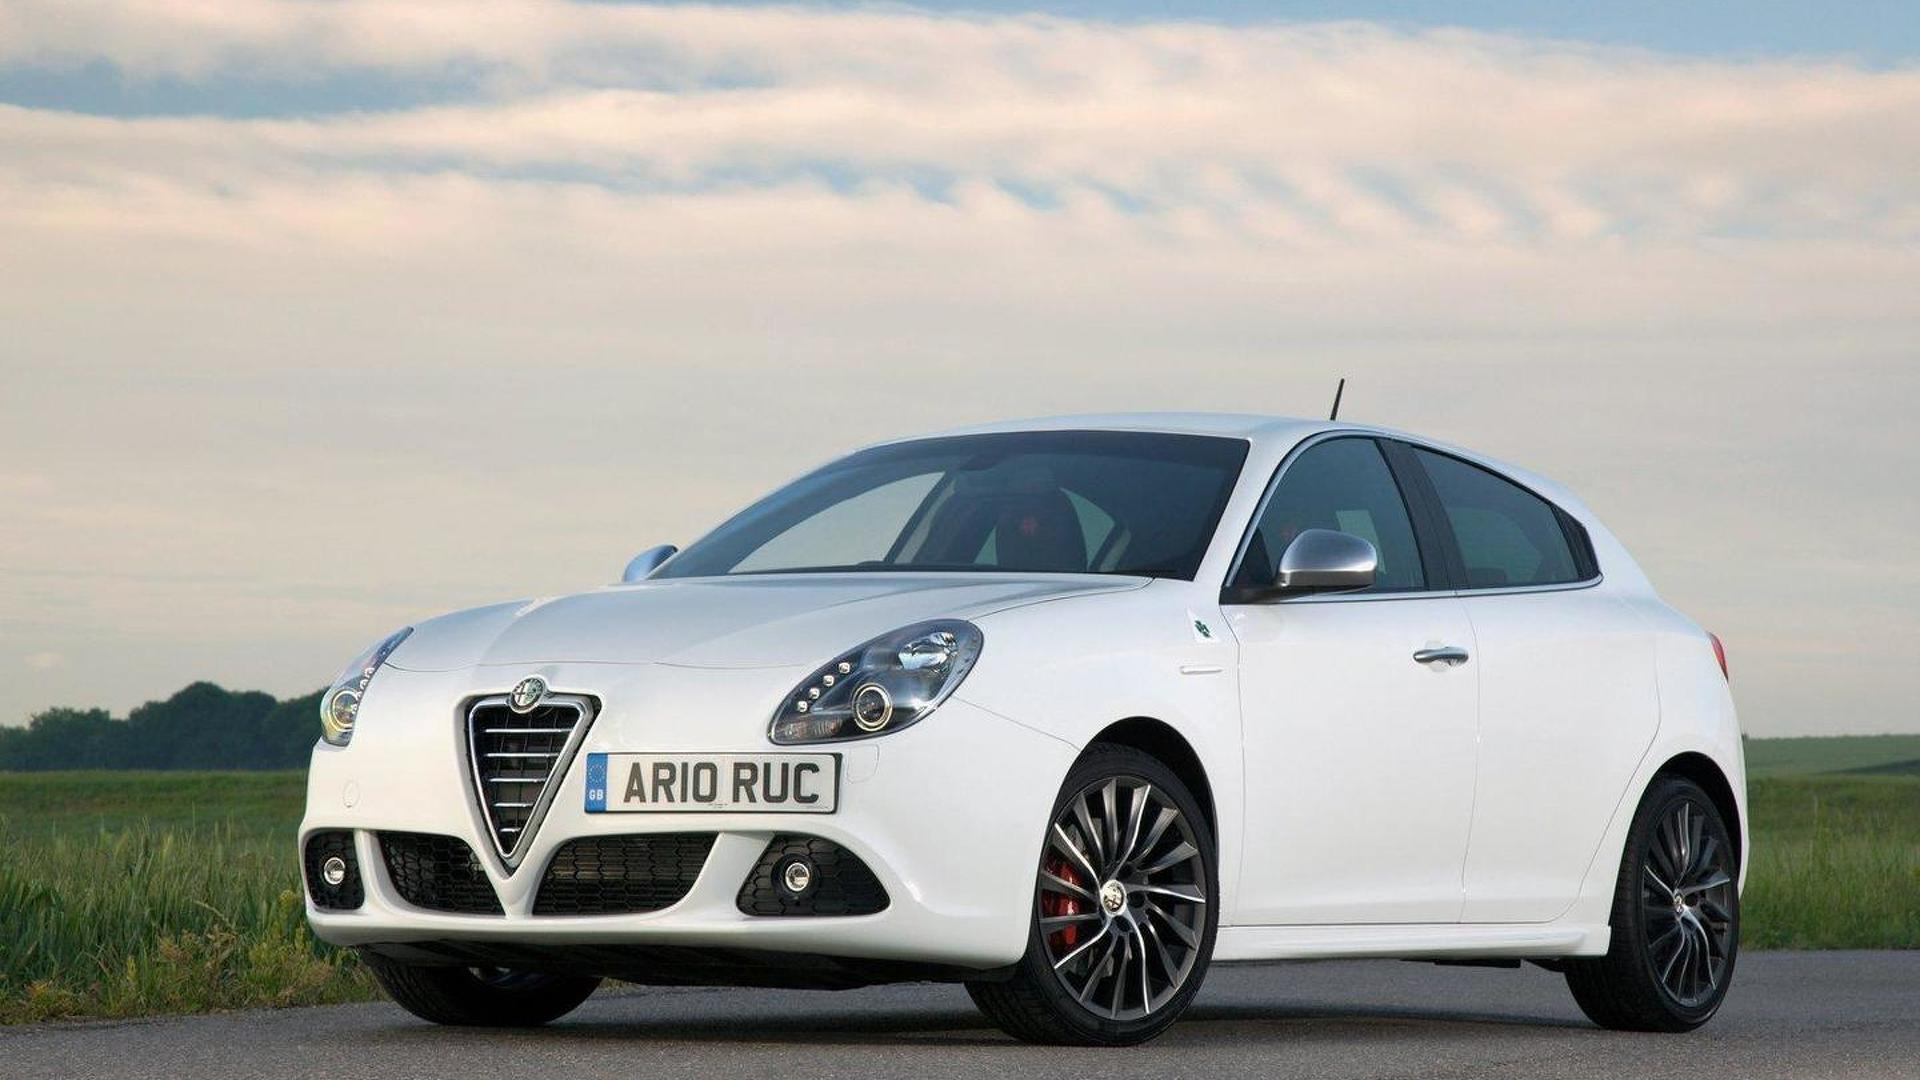 Alfa Romeo to launch full line-up in U.S.